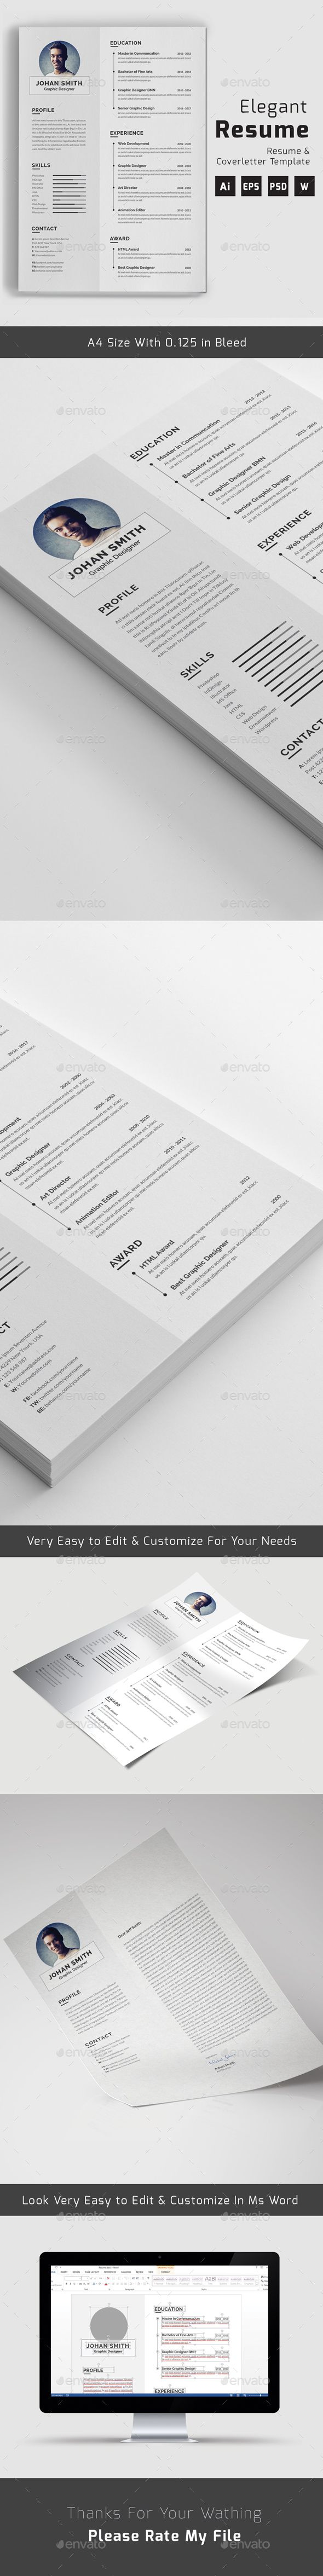 Resume 42 best UX Design Resume images